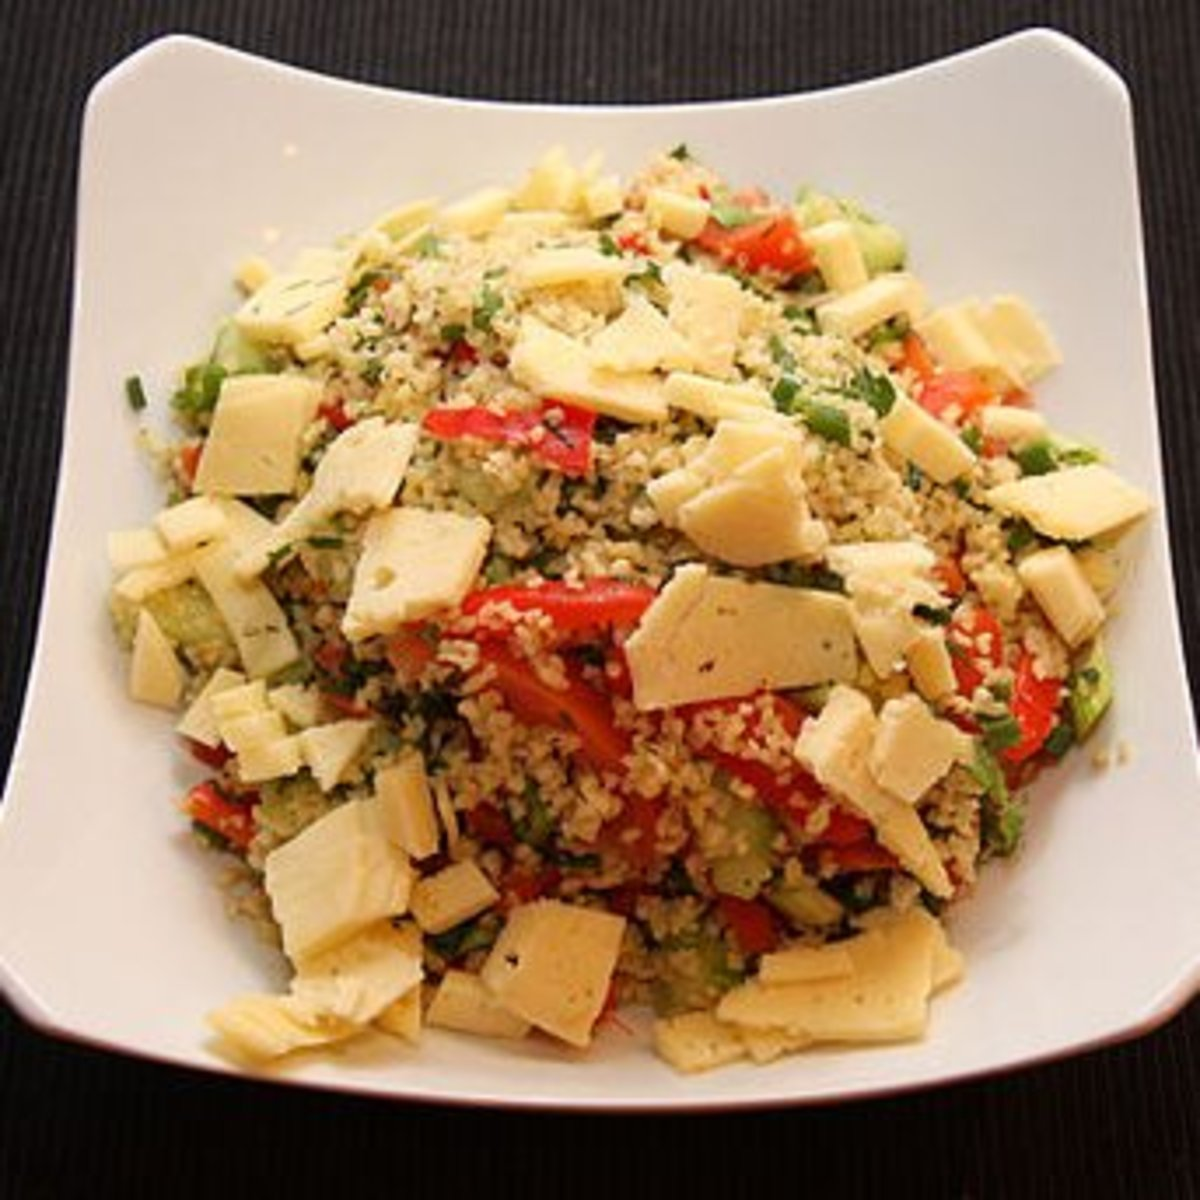 Bulgur Wheat Salad - Delicious!